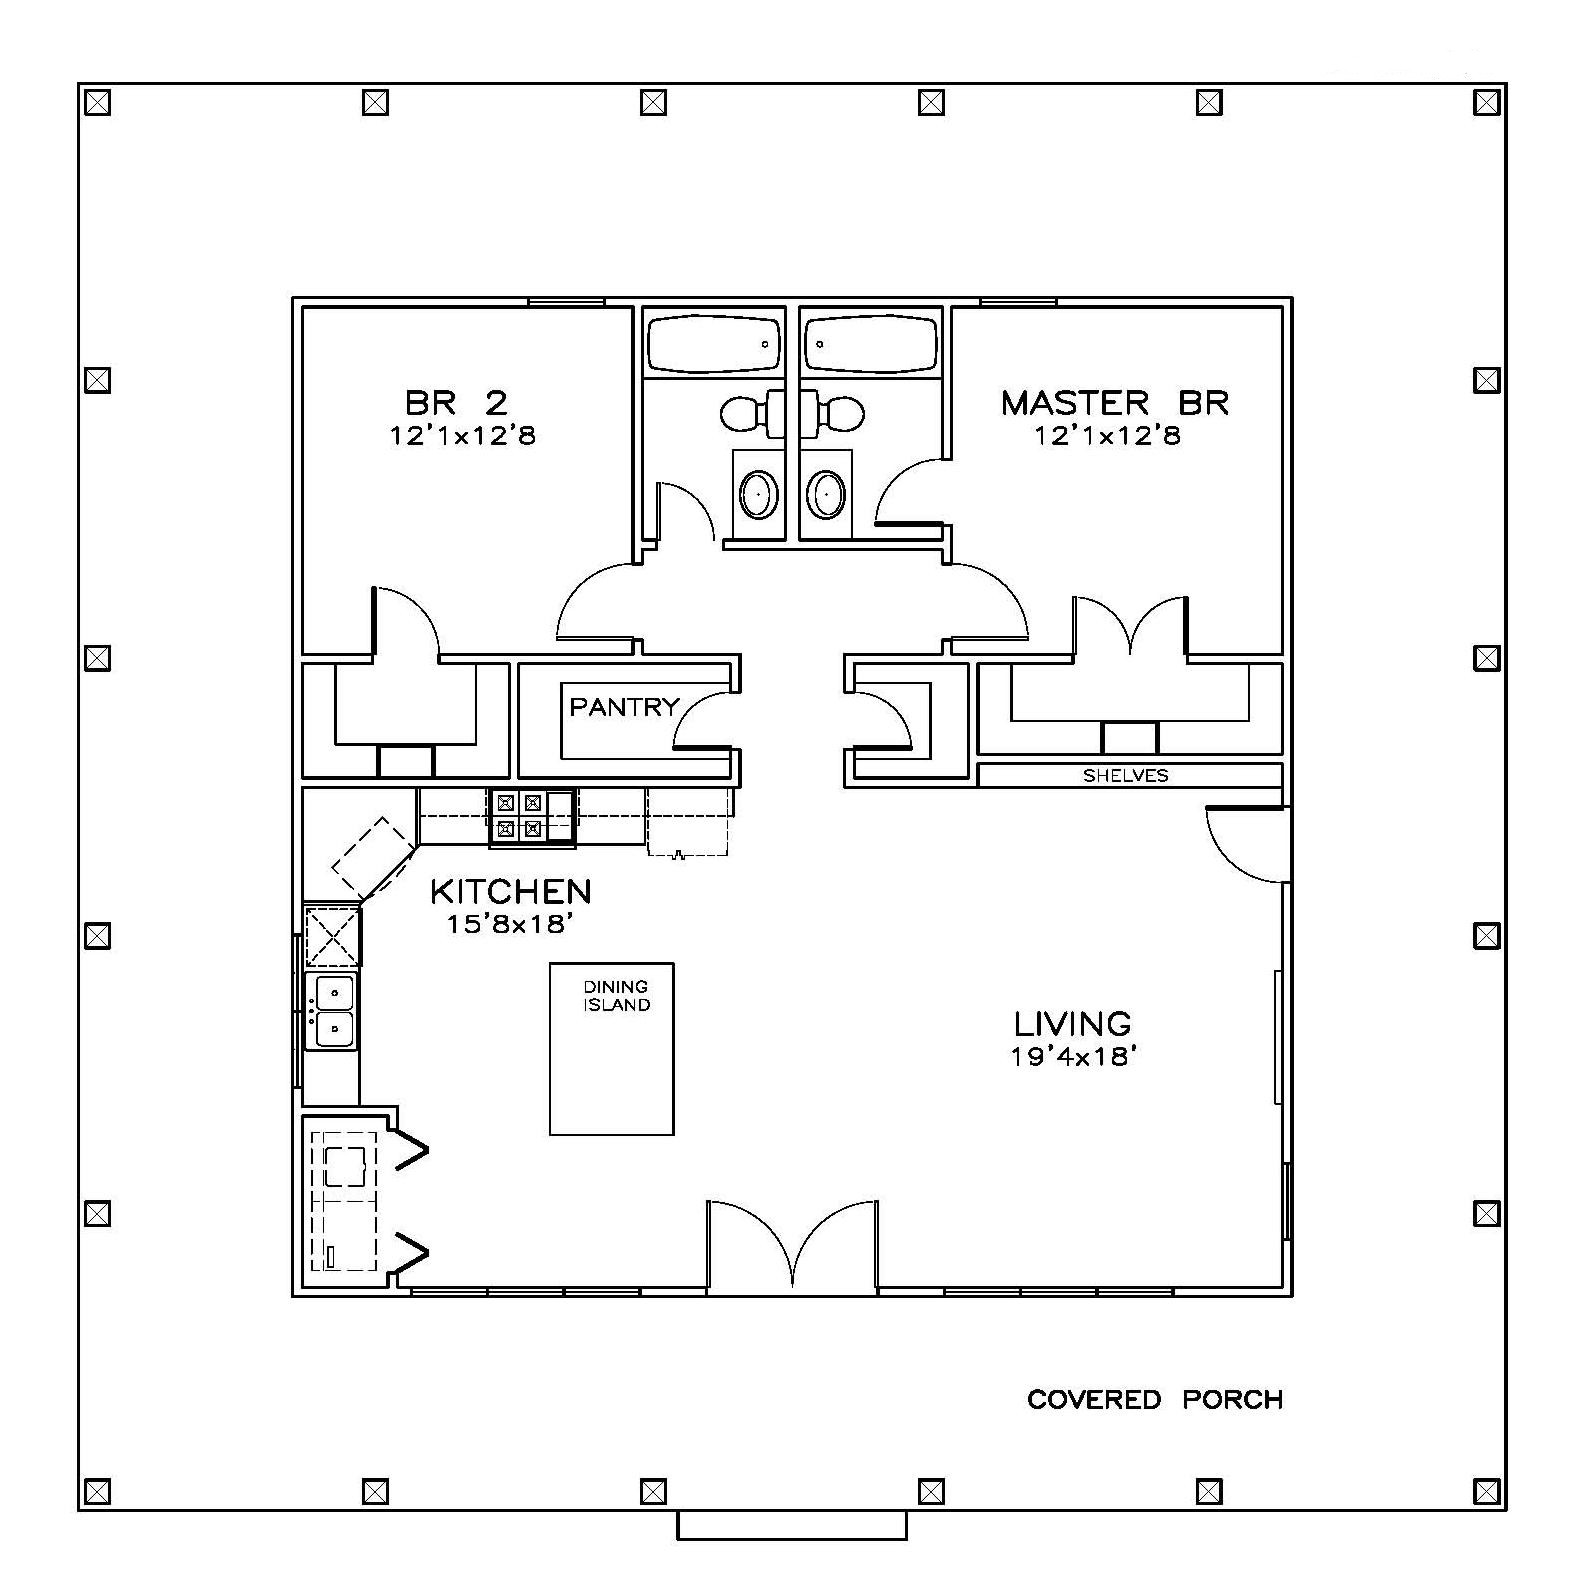 Southern House Plan 155 1010 2 Bedrm 1225 Sq Ft Home